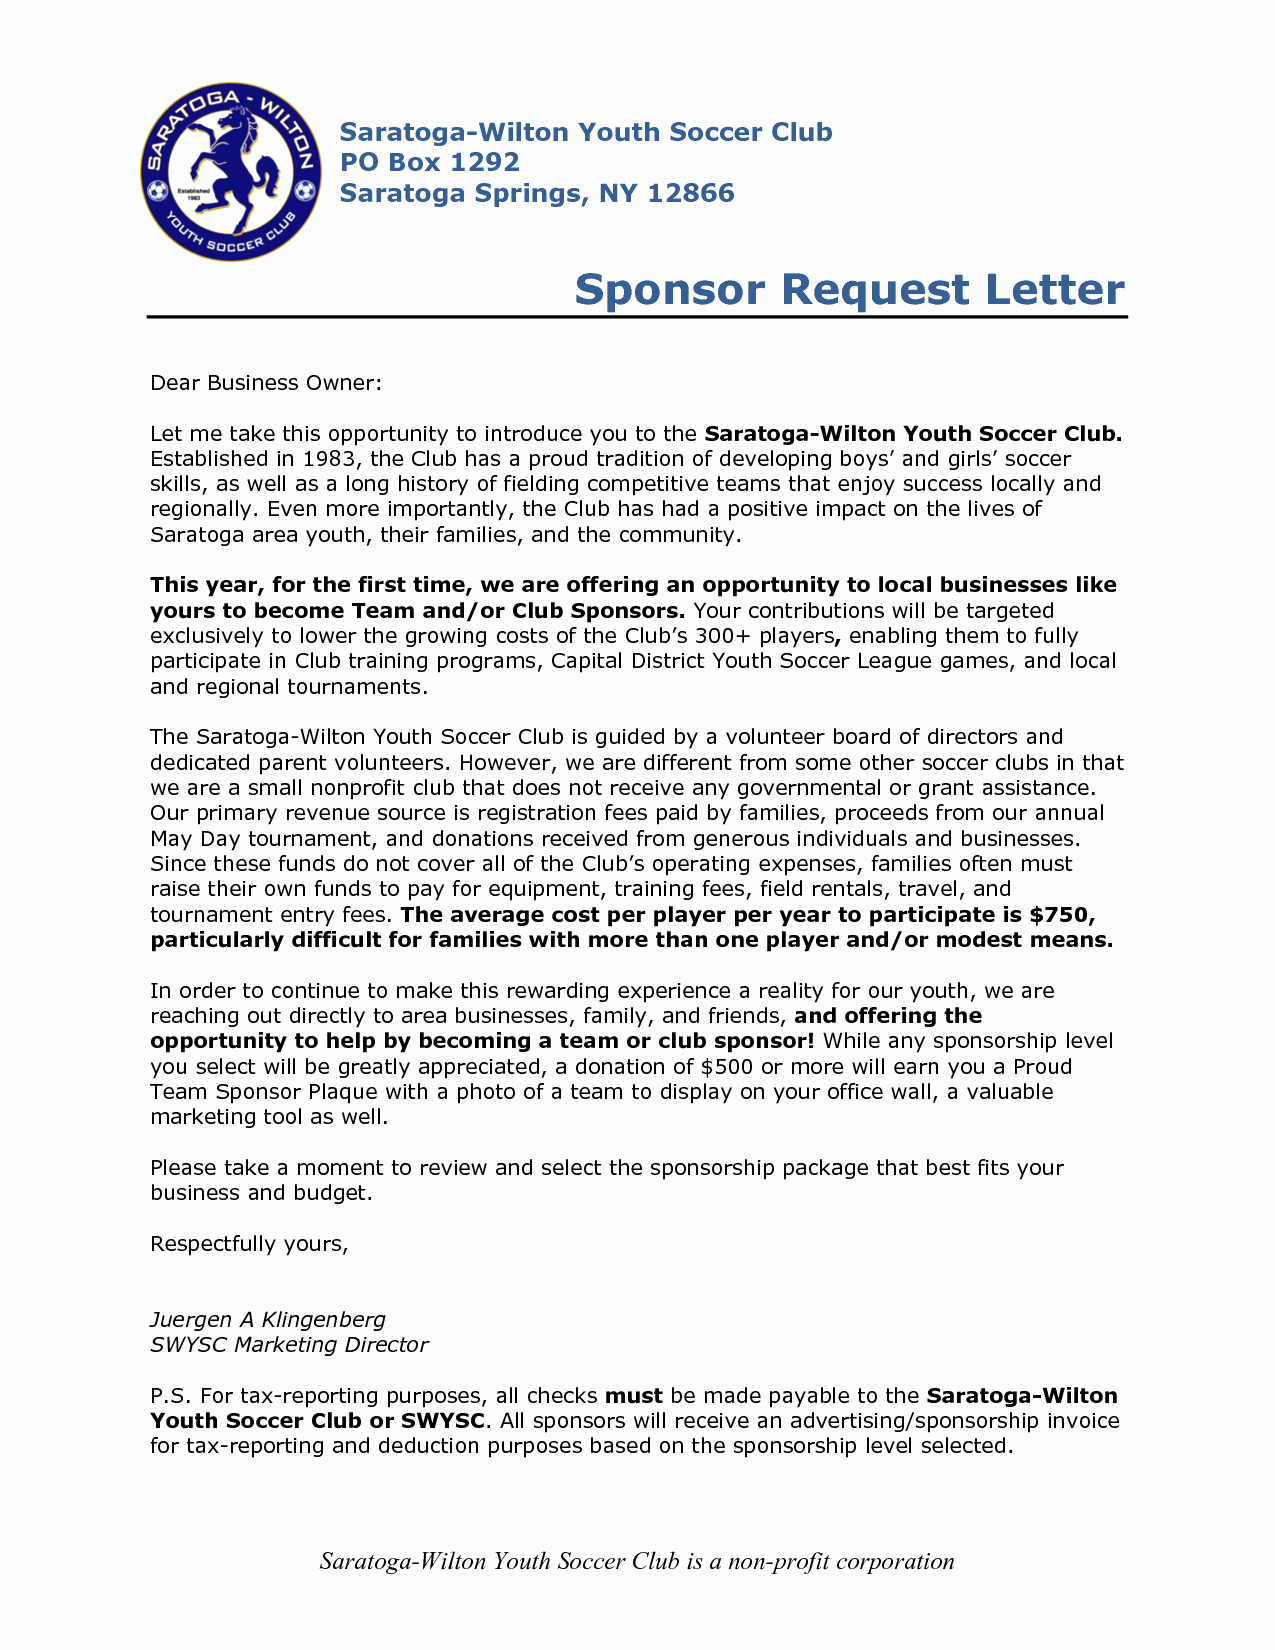 Sample Sponsorship Request Letter for Youth Sports Team